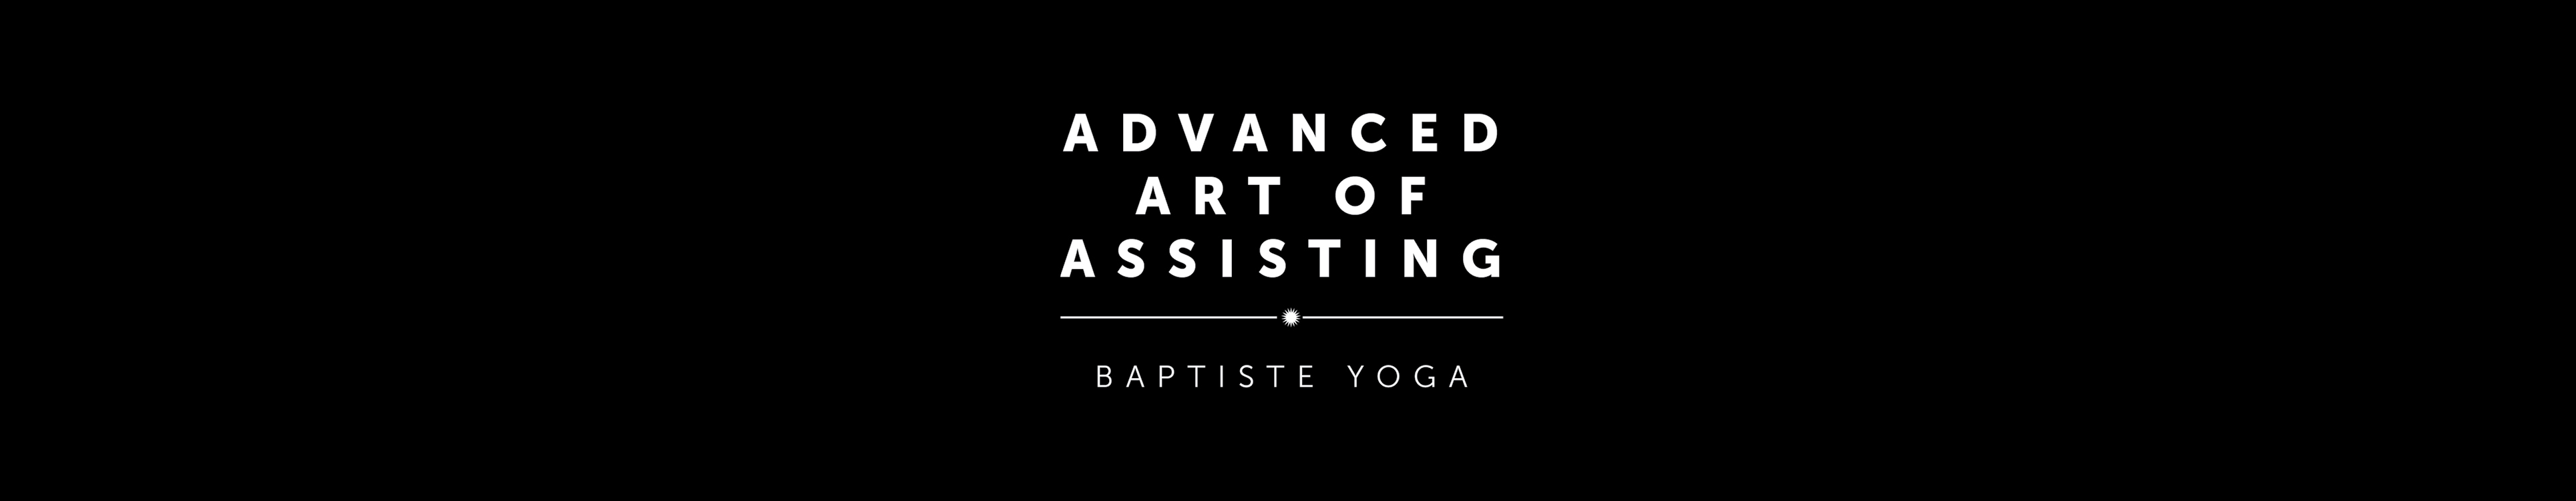 Willamette Valley Power Yoga | Advanced Art of Assisting